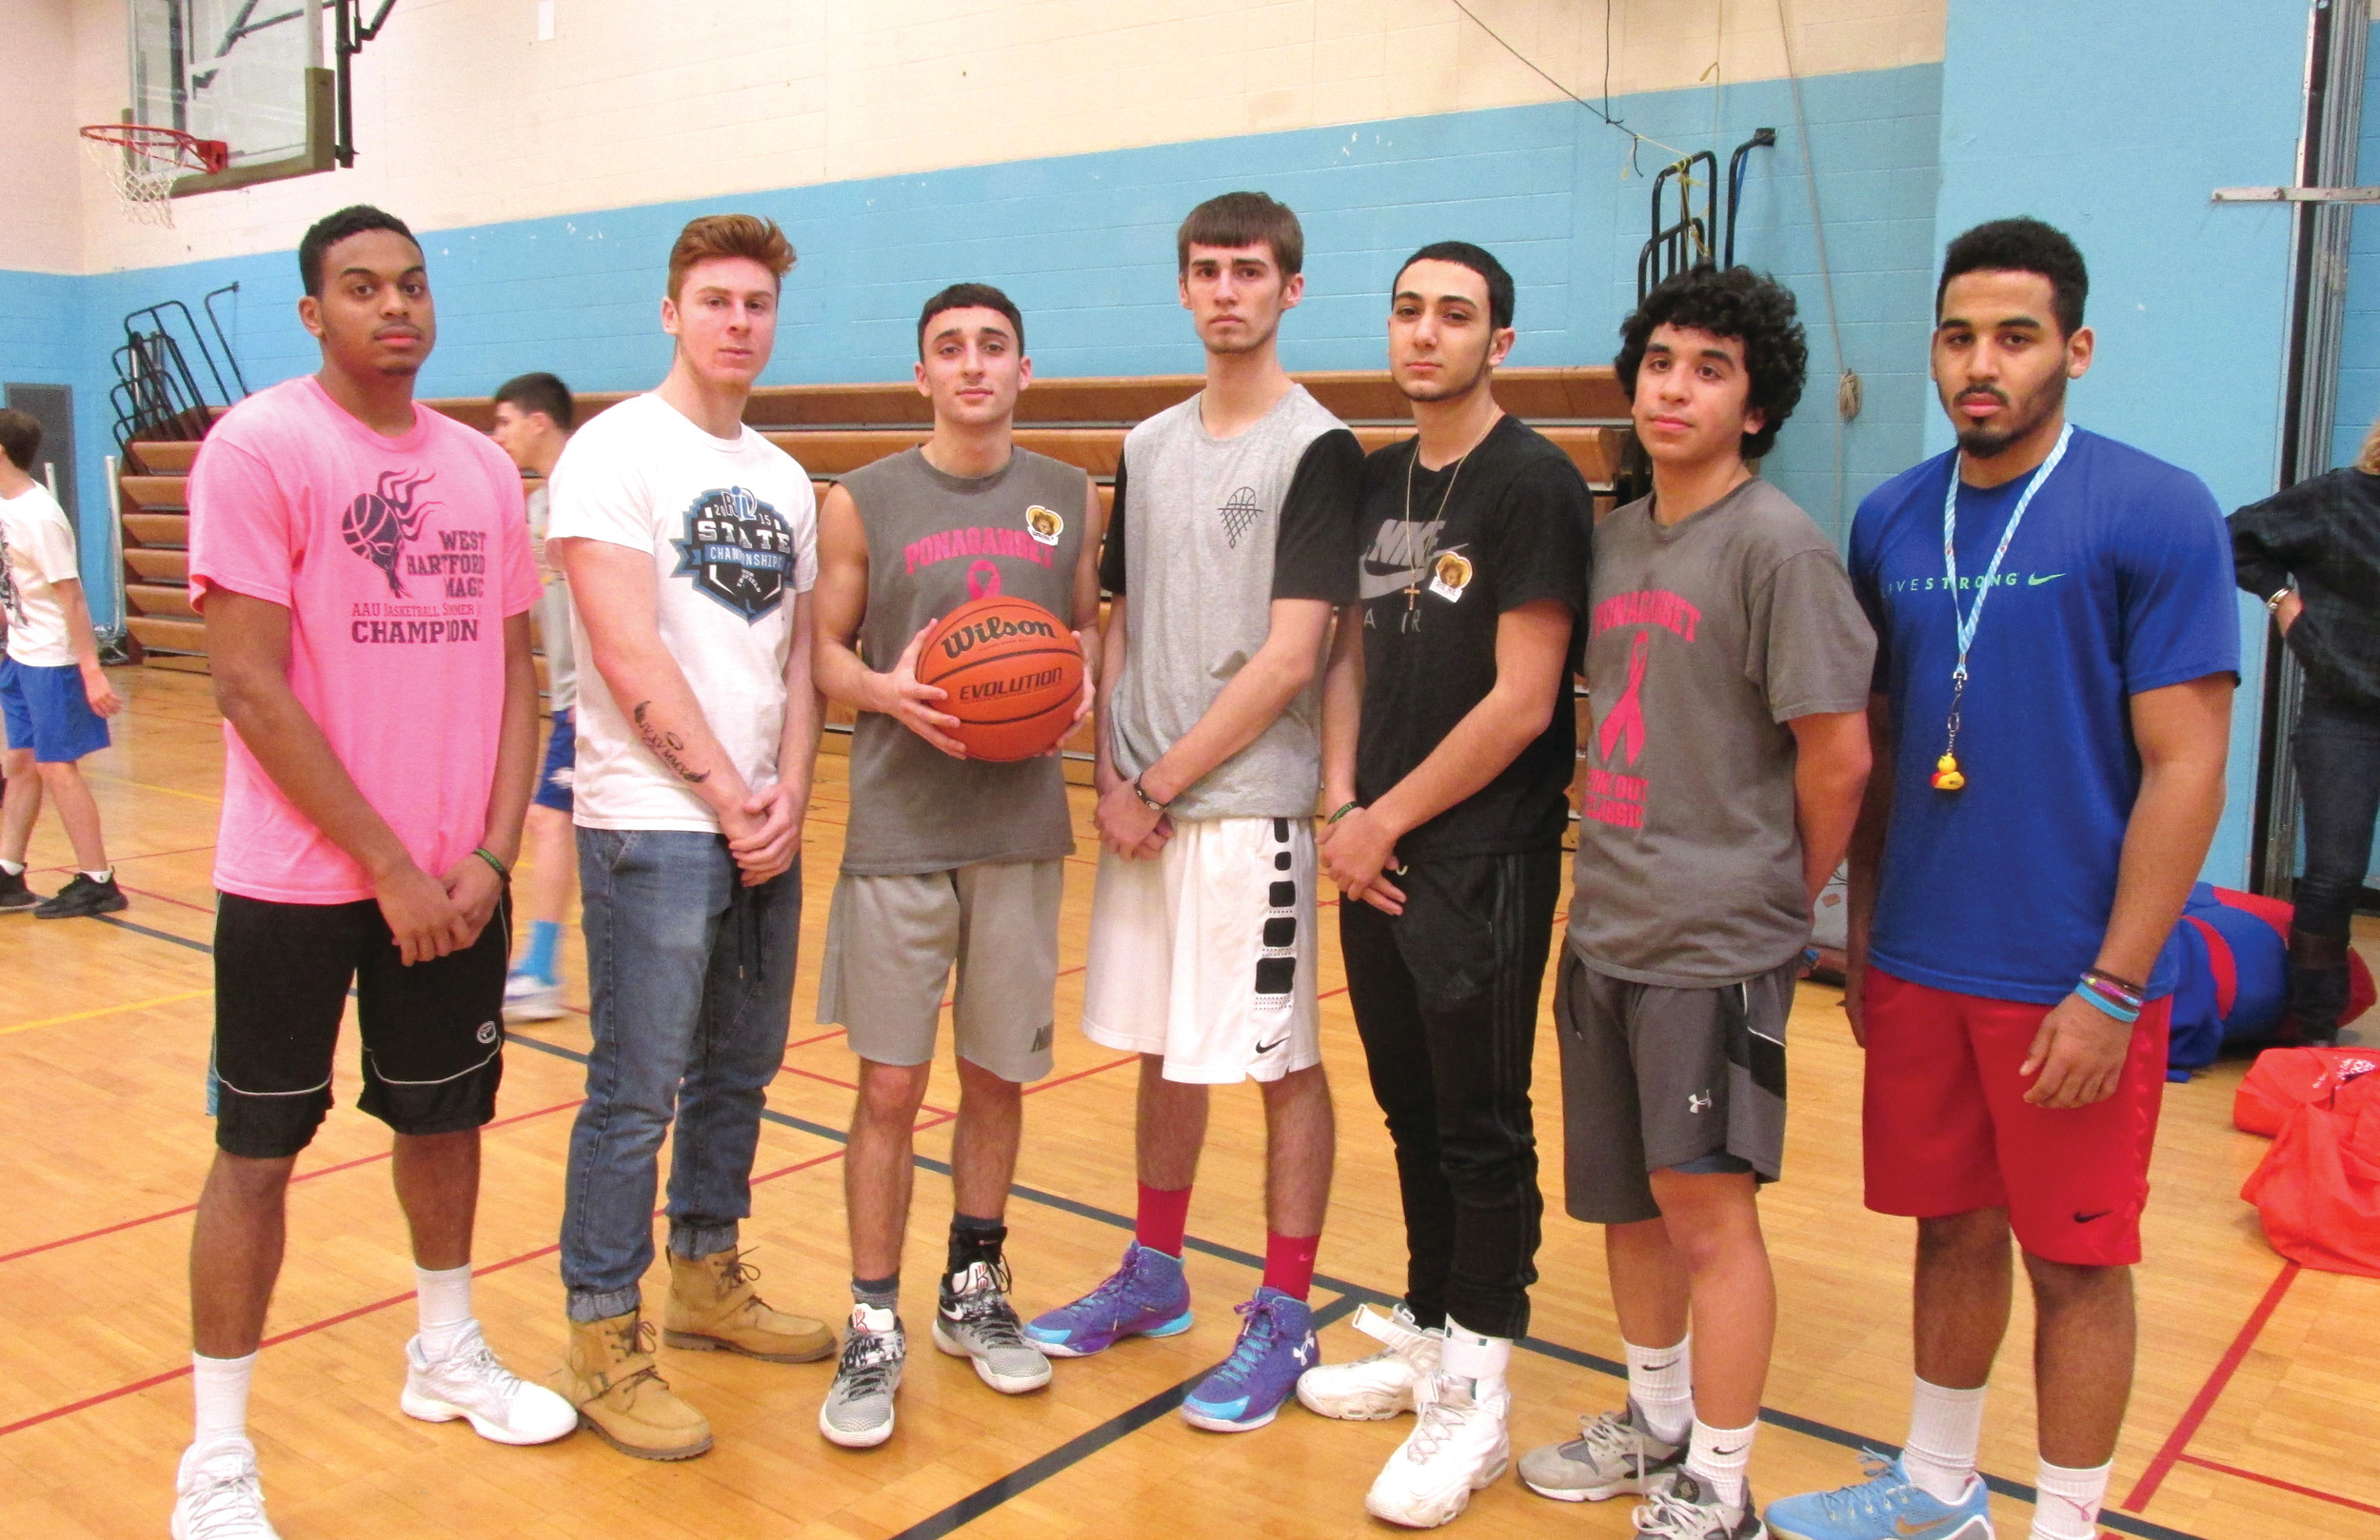 GREAT CAUSE: Among the Johnston High School basketball players who helped raise $2,700 during last week's annual Hoops for Heart event were: Nas Vasquez, Kyle Nelson, Nick Mollicone, Ryan Yankee, Mike Pilkington, Jaxon Tavares and Noah Jean-Laurent.